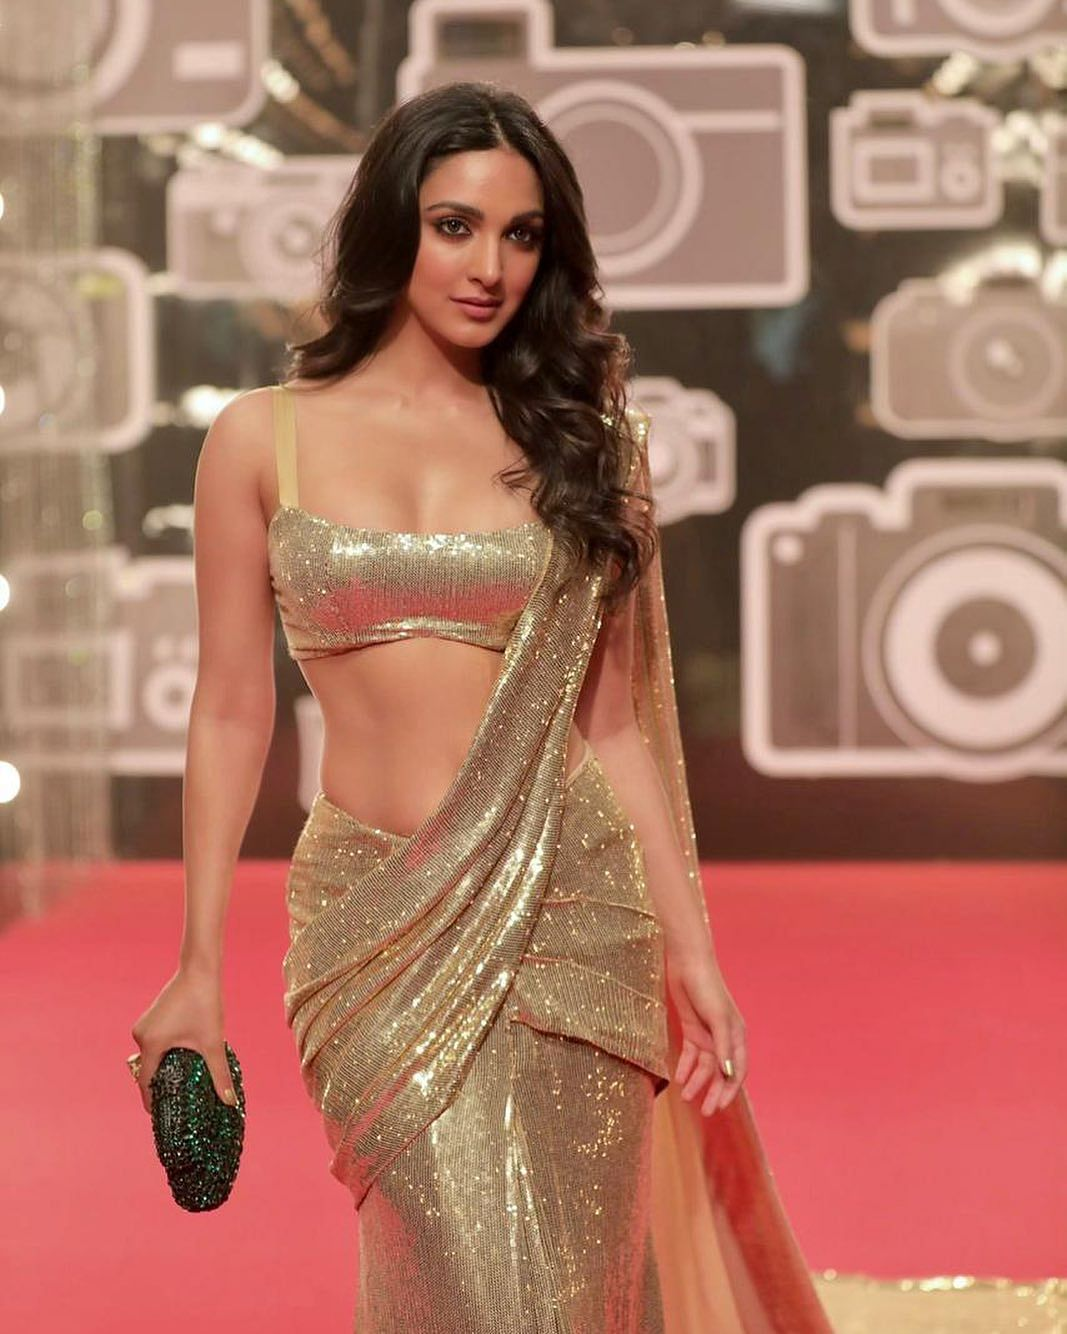 Kiara Advani looks stunning draped in six yards of grace by Manish Malhotra